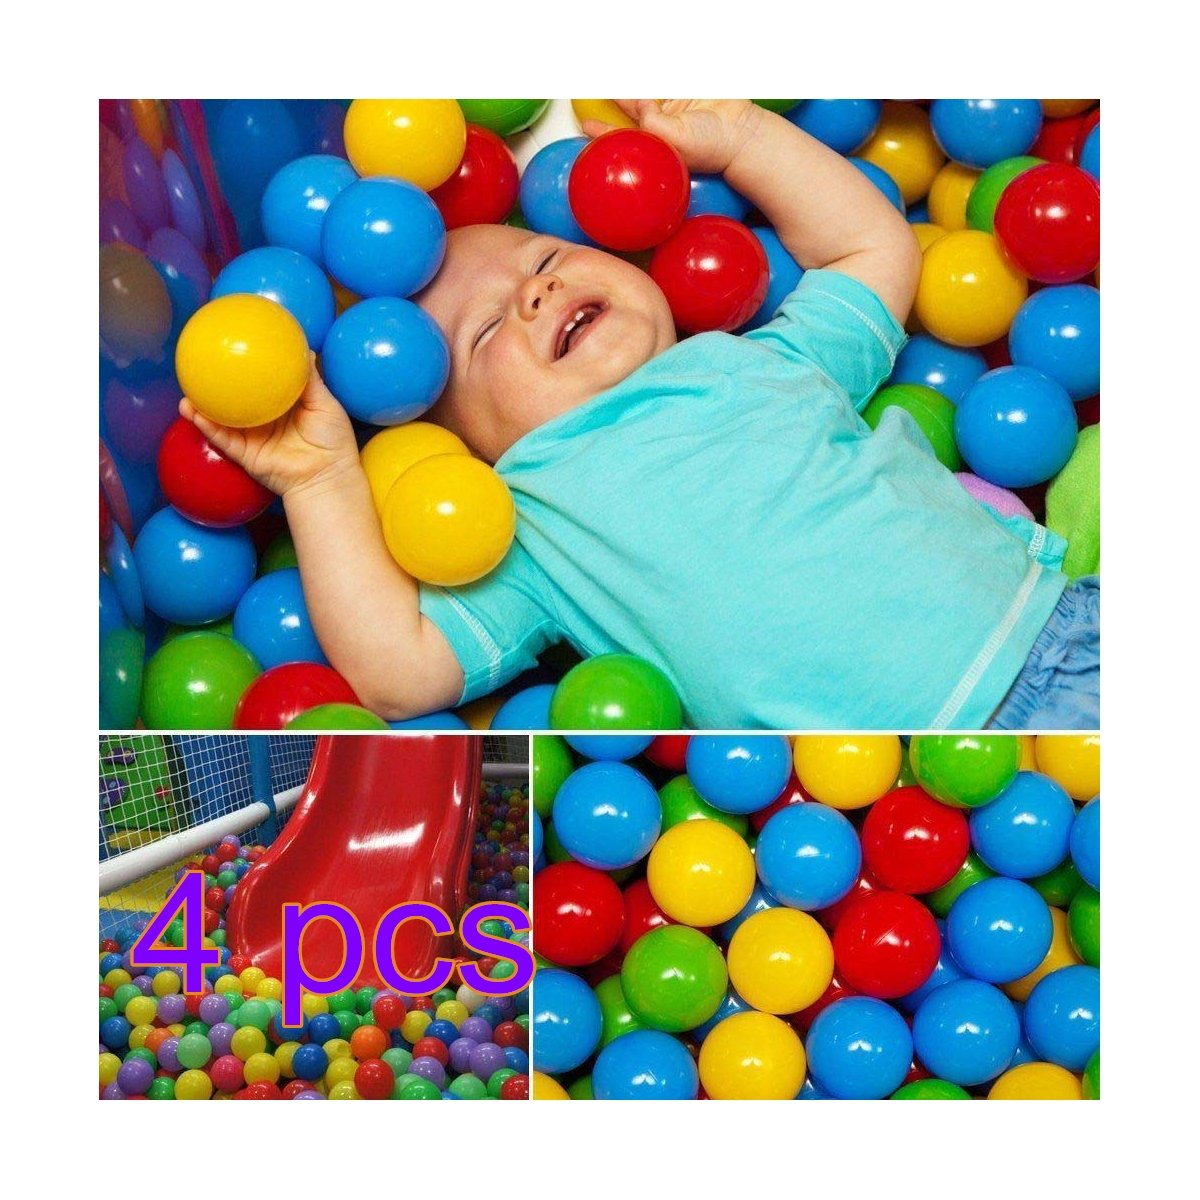 200pcs Colorful Ball Fun Ball Soft Plastic Ocean Ball Free BPA Free Crush Proof For Baby Kid Toy Swim Pit Toy